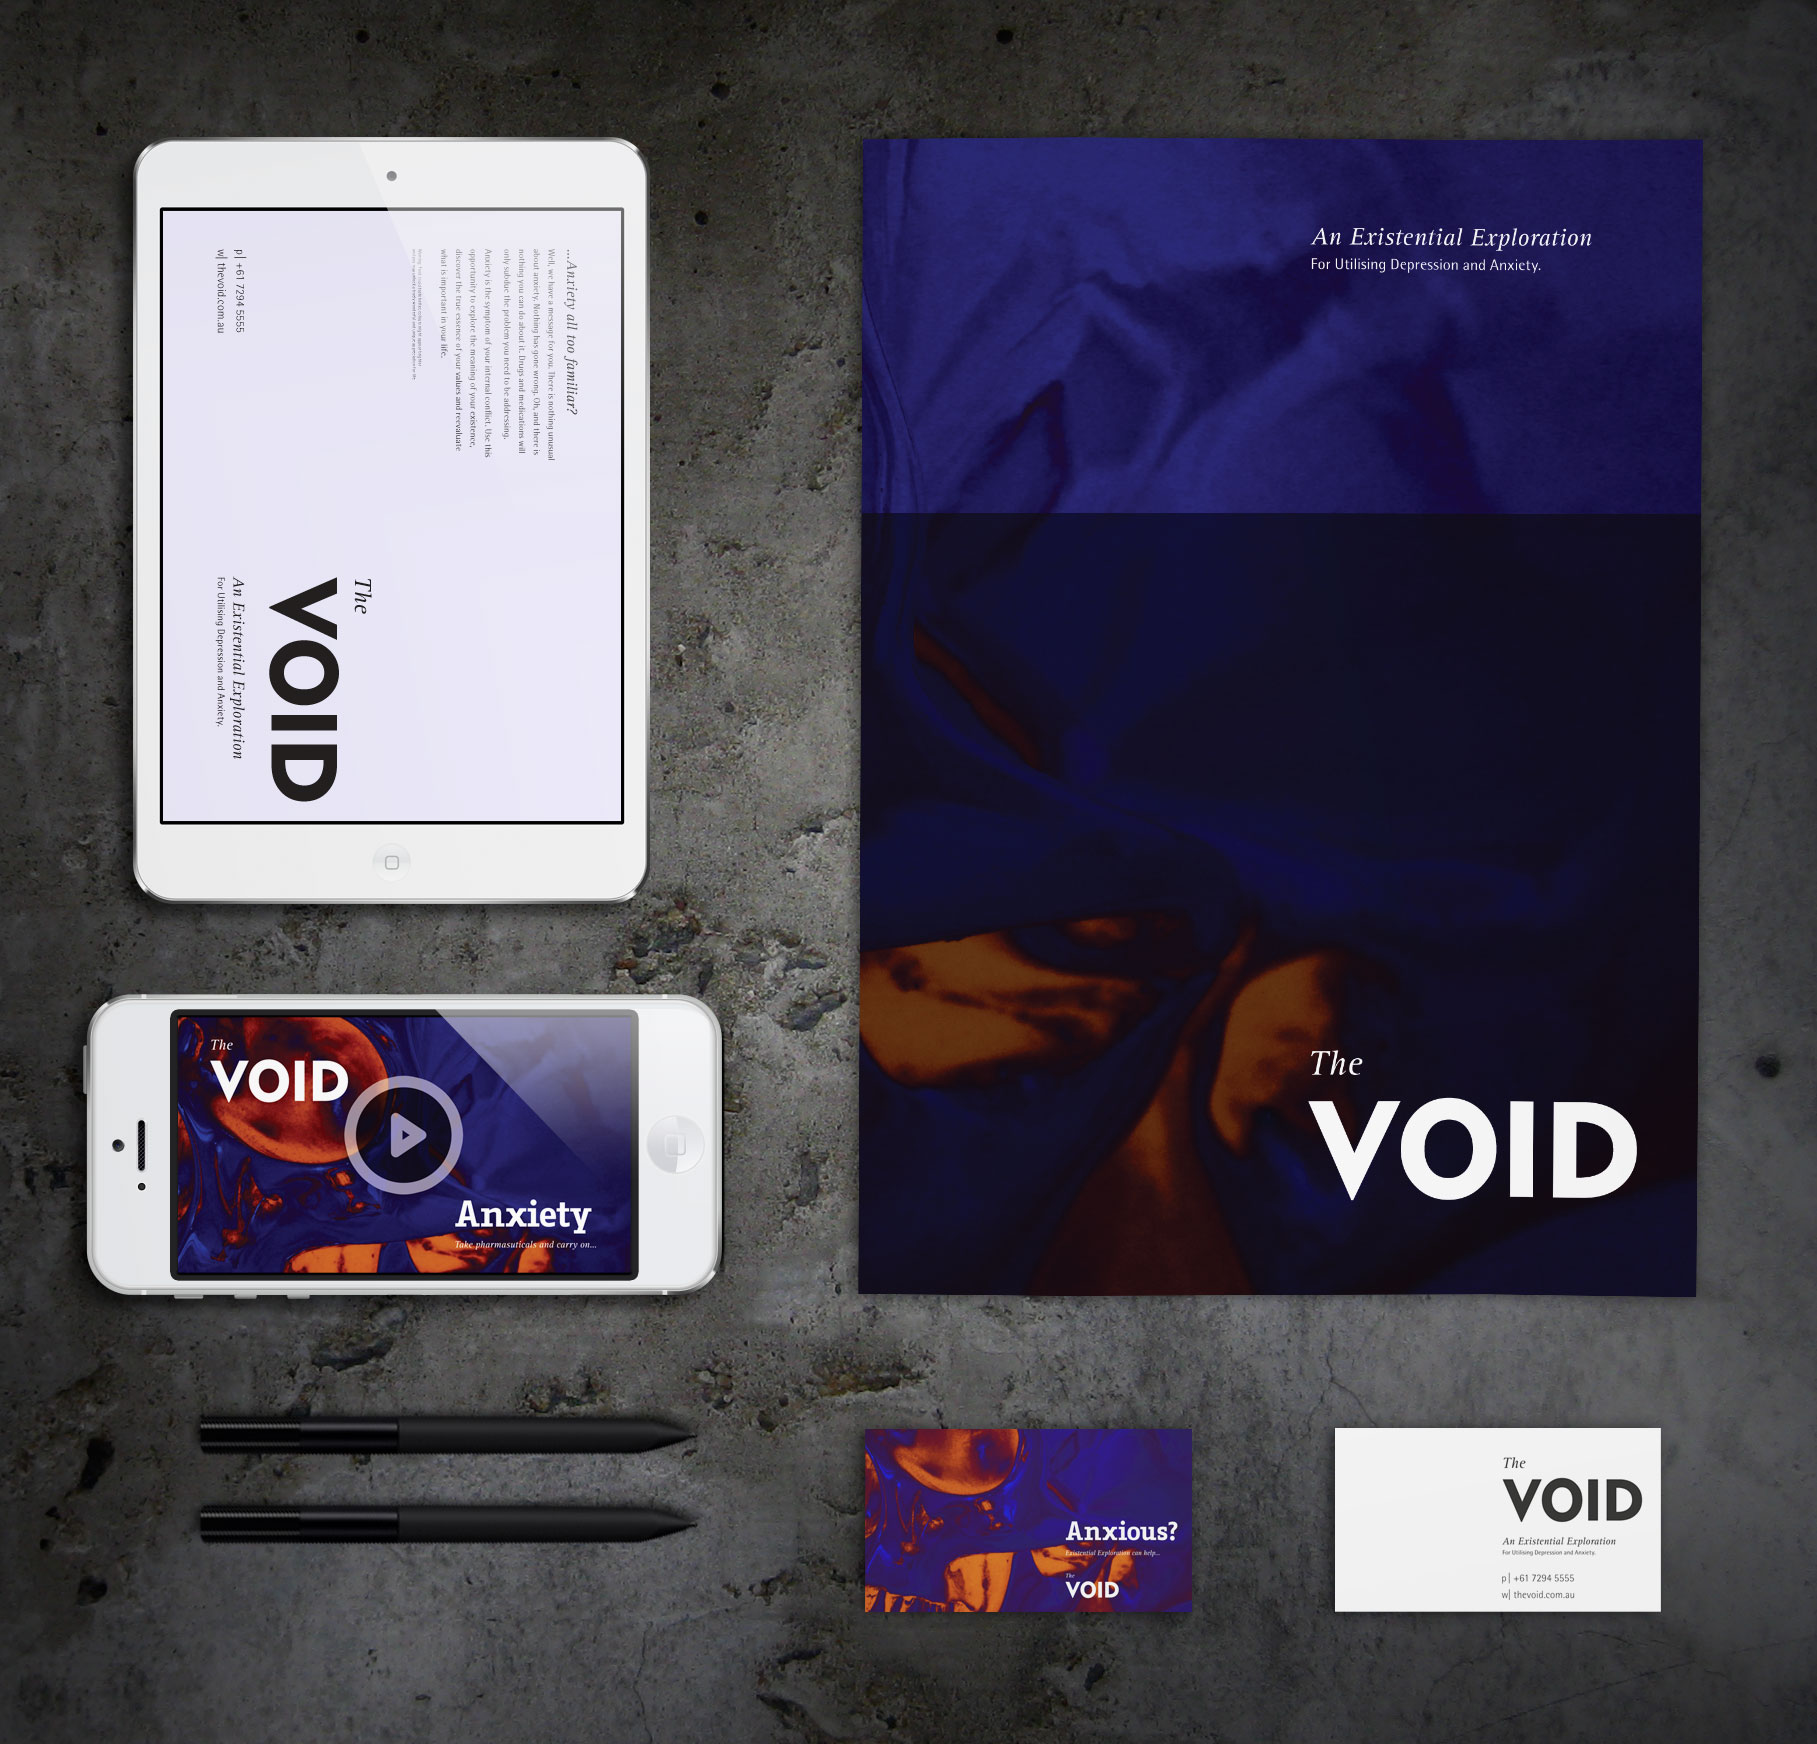 The full design lay up / layout of the Void campaign and communications material.